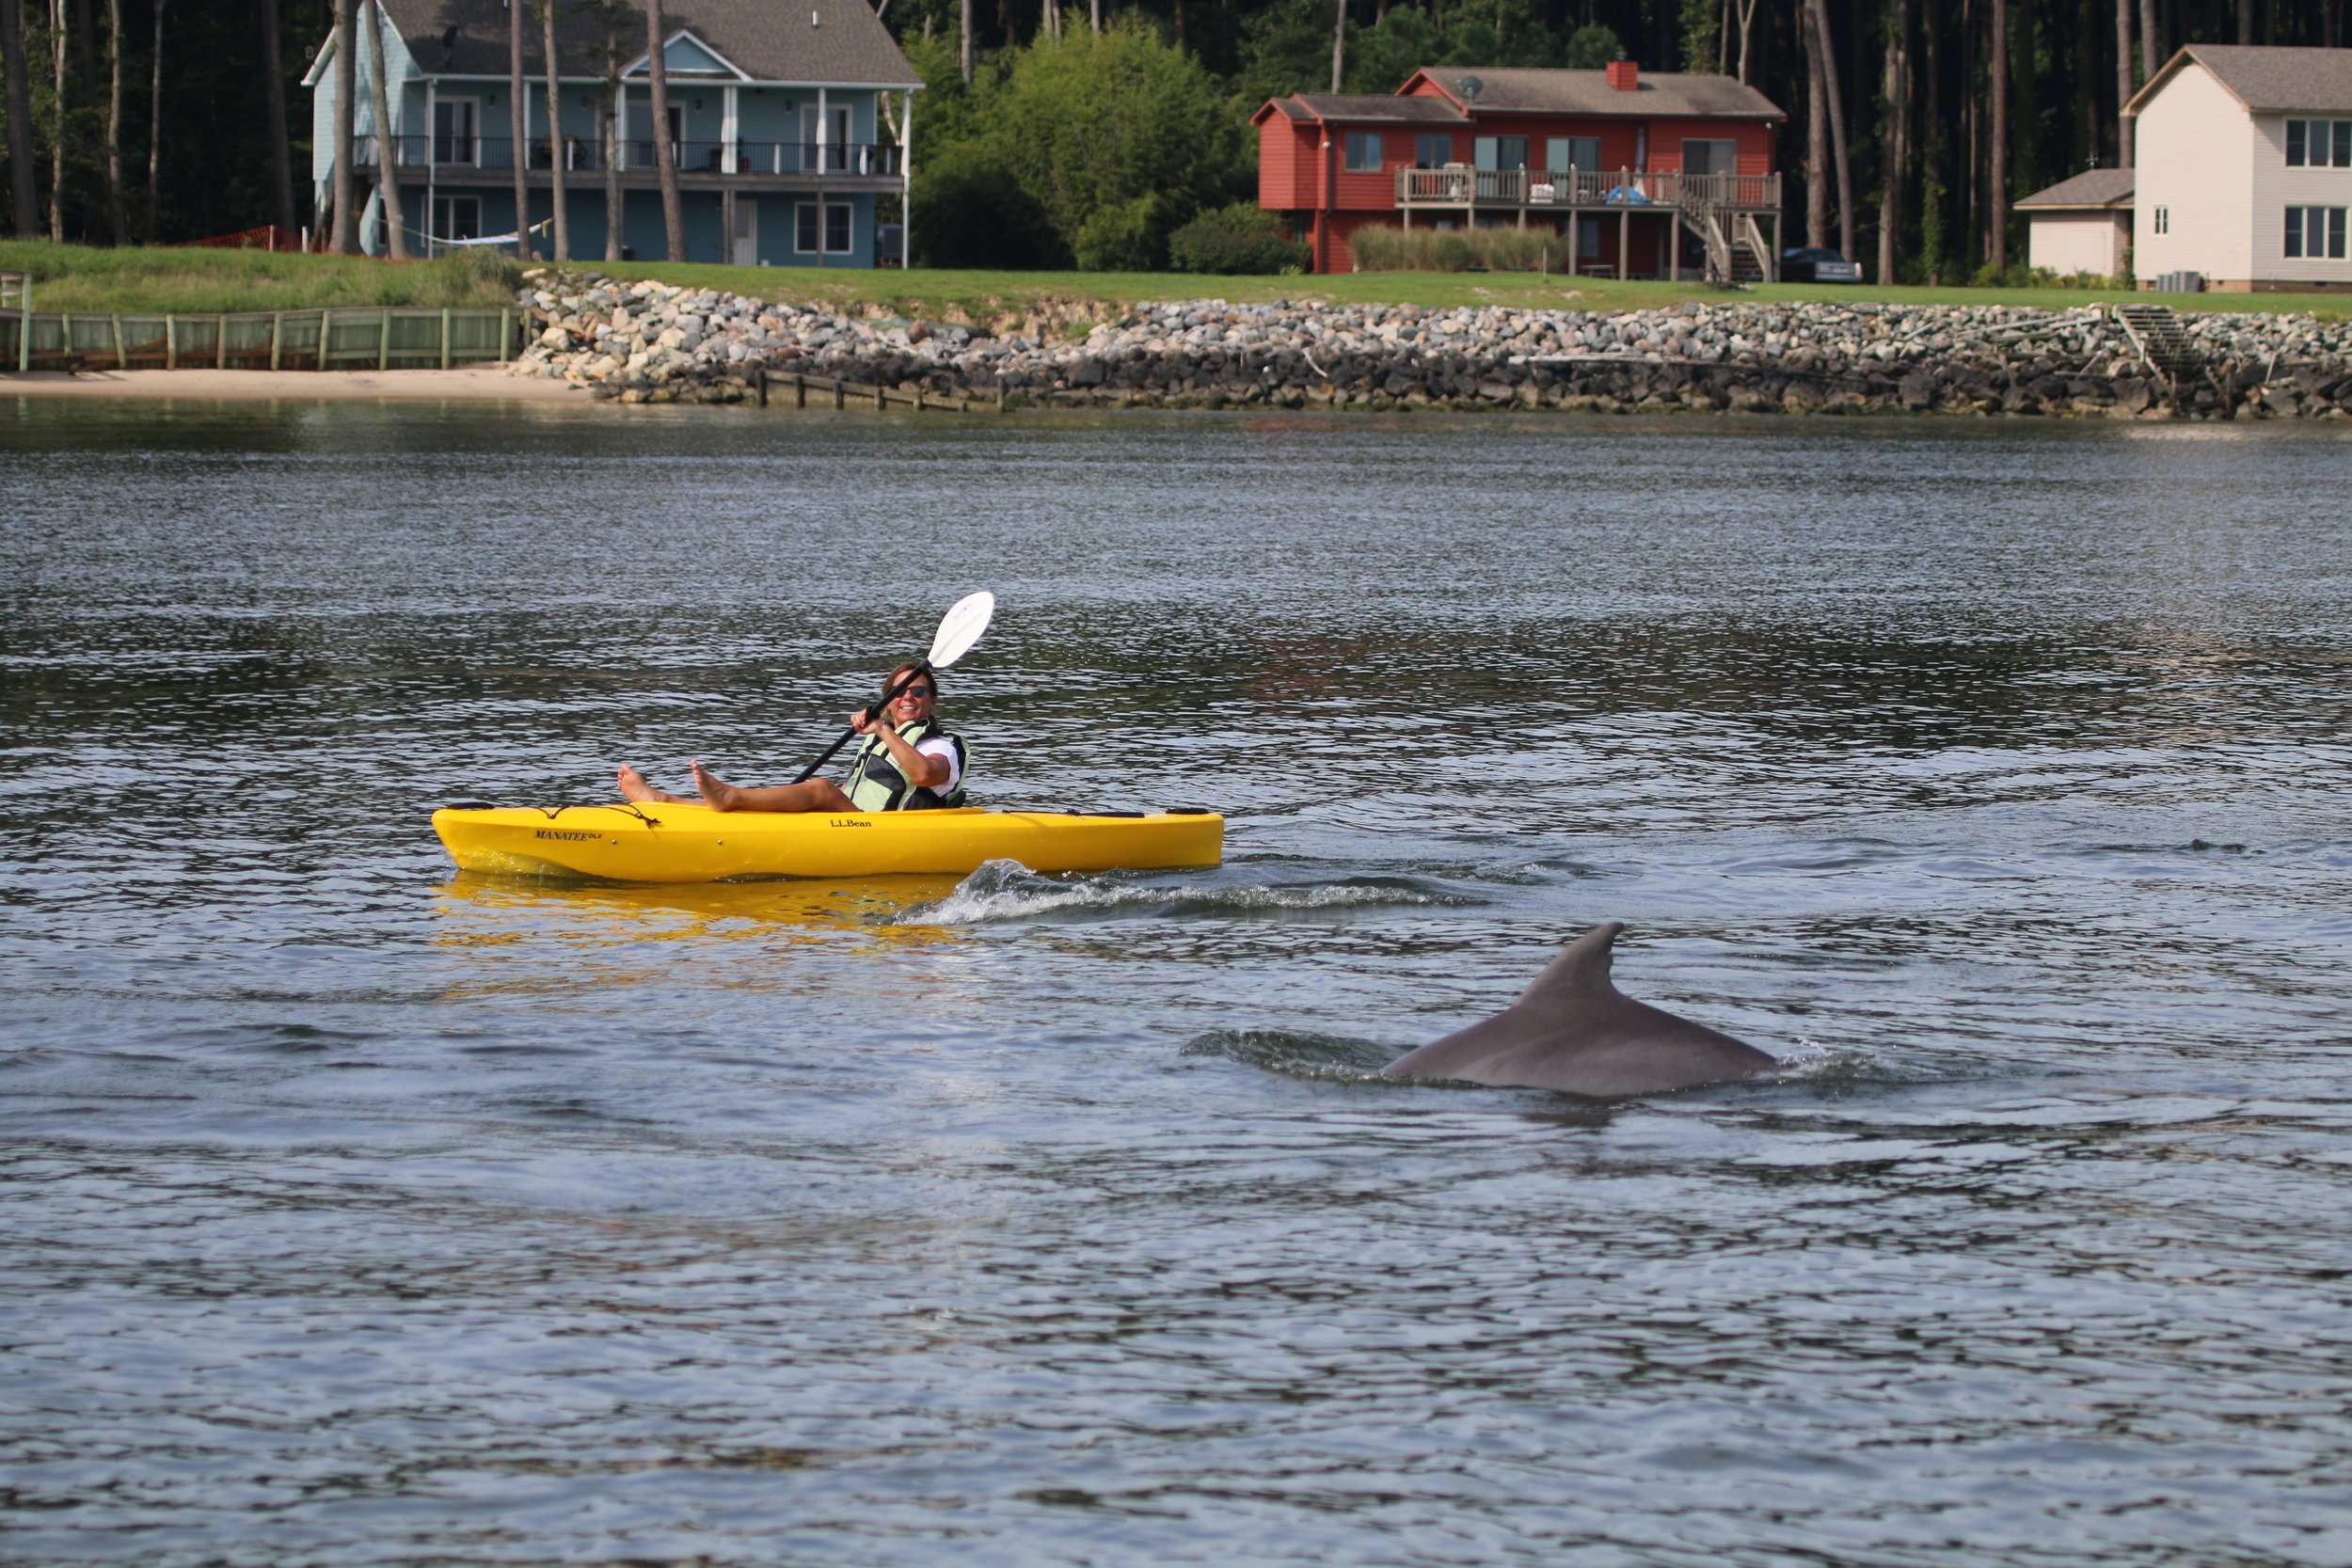 Dr. Janet Mann, DIRECTOR of the PCDP, TRAcks a pod of dolphins in the lower Potomac. Photo Courtesy of the  Potomac-Chesapeake Dolphin Project . (TAKEN UNDER NMFS PERMIT #19403)